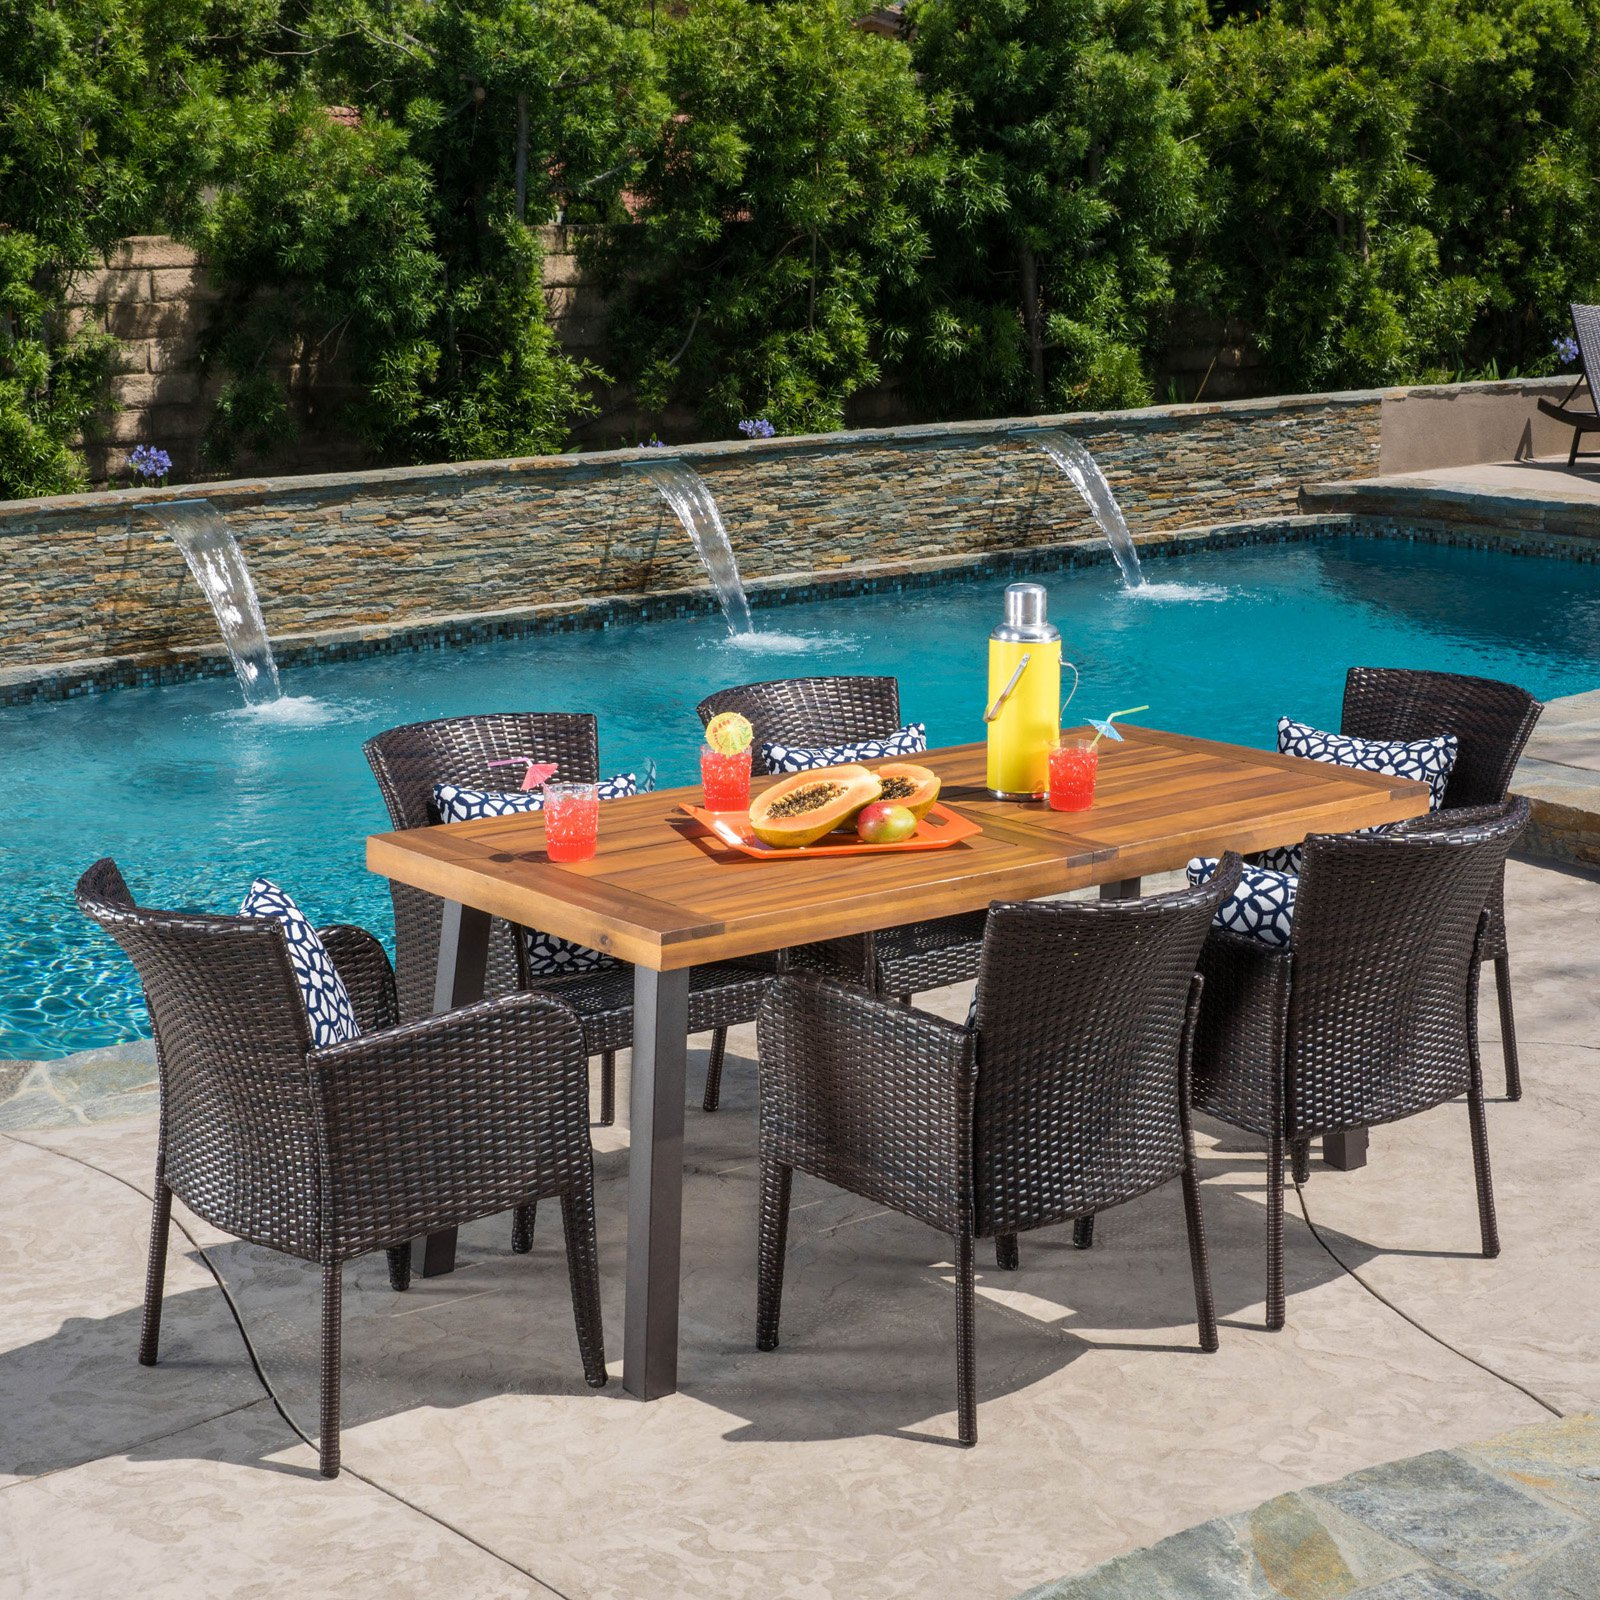 Best Selling Home Arica Wicker 7 Piece Patio Dining Room Set by Best Selling Home Decor Furniture LLC